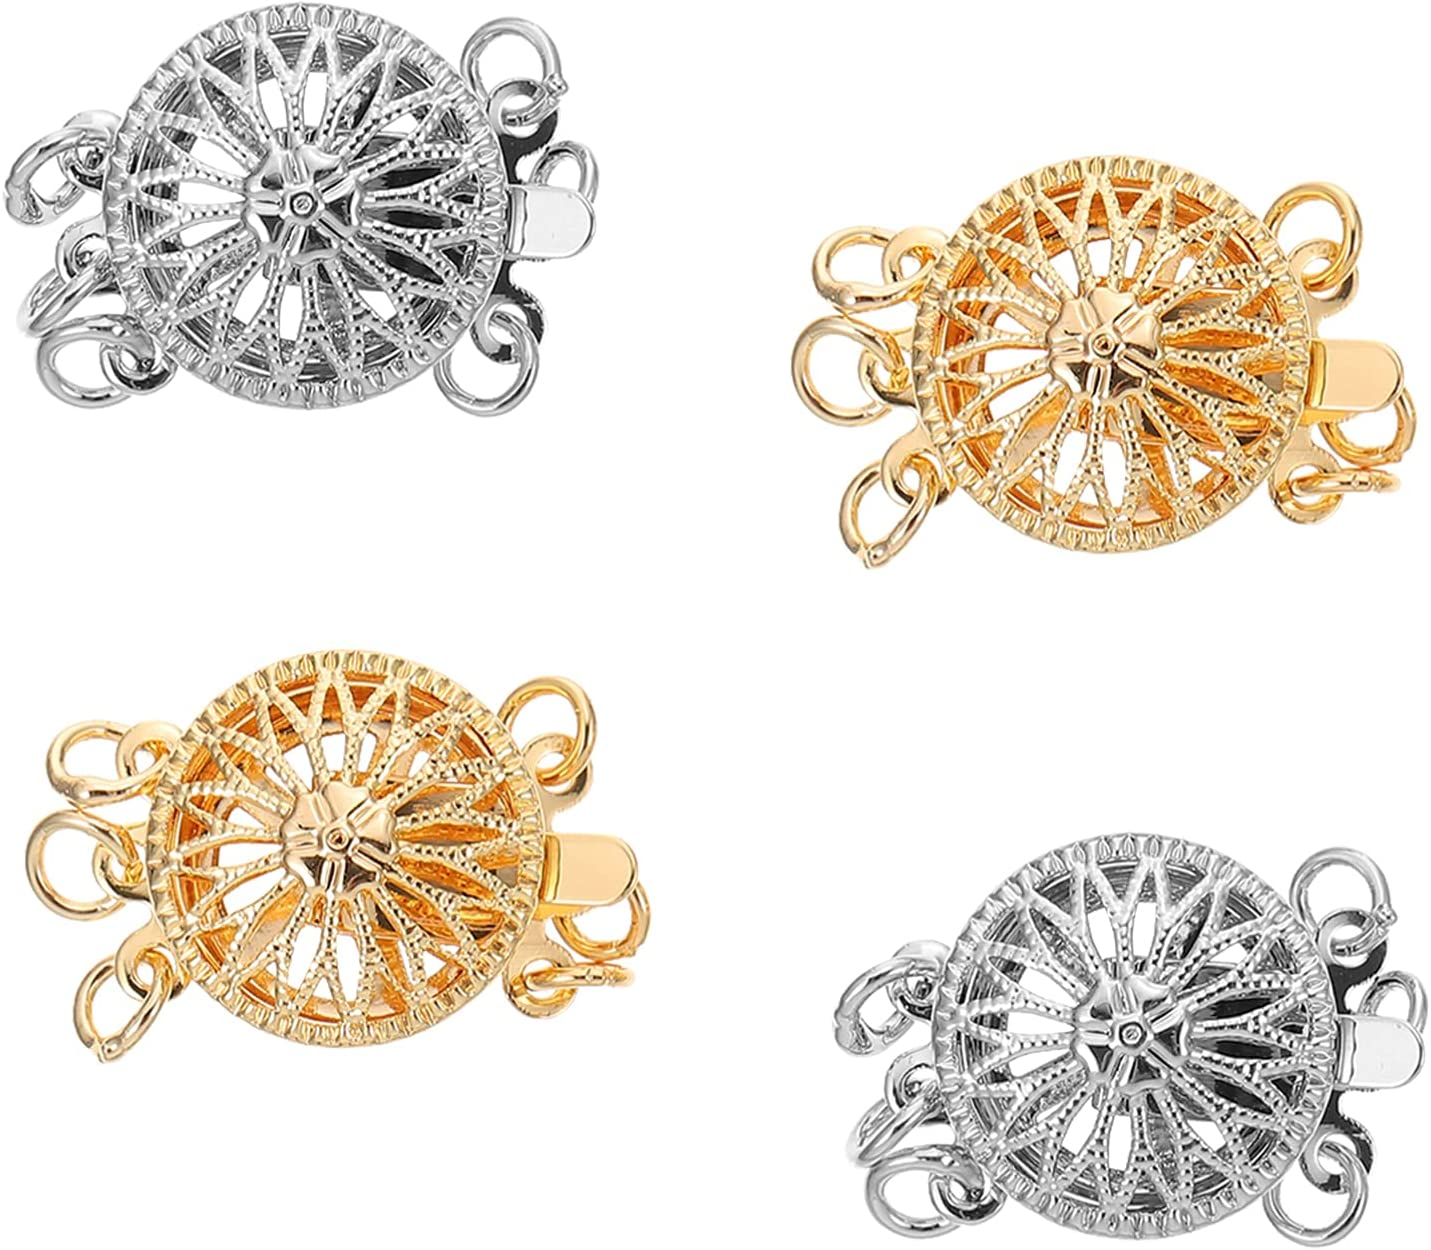 EXCEART 4pcs Necklace Attention brand Clasp Filigree Special price for a limited time Beads Lobster Sunflower Cla